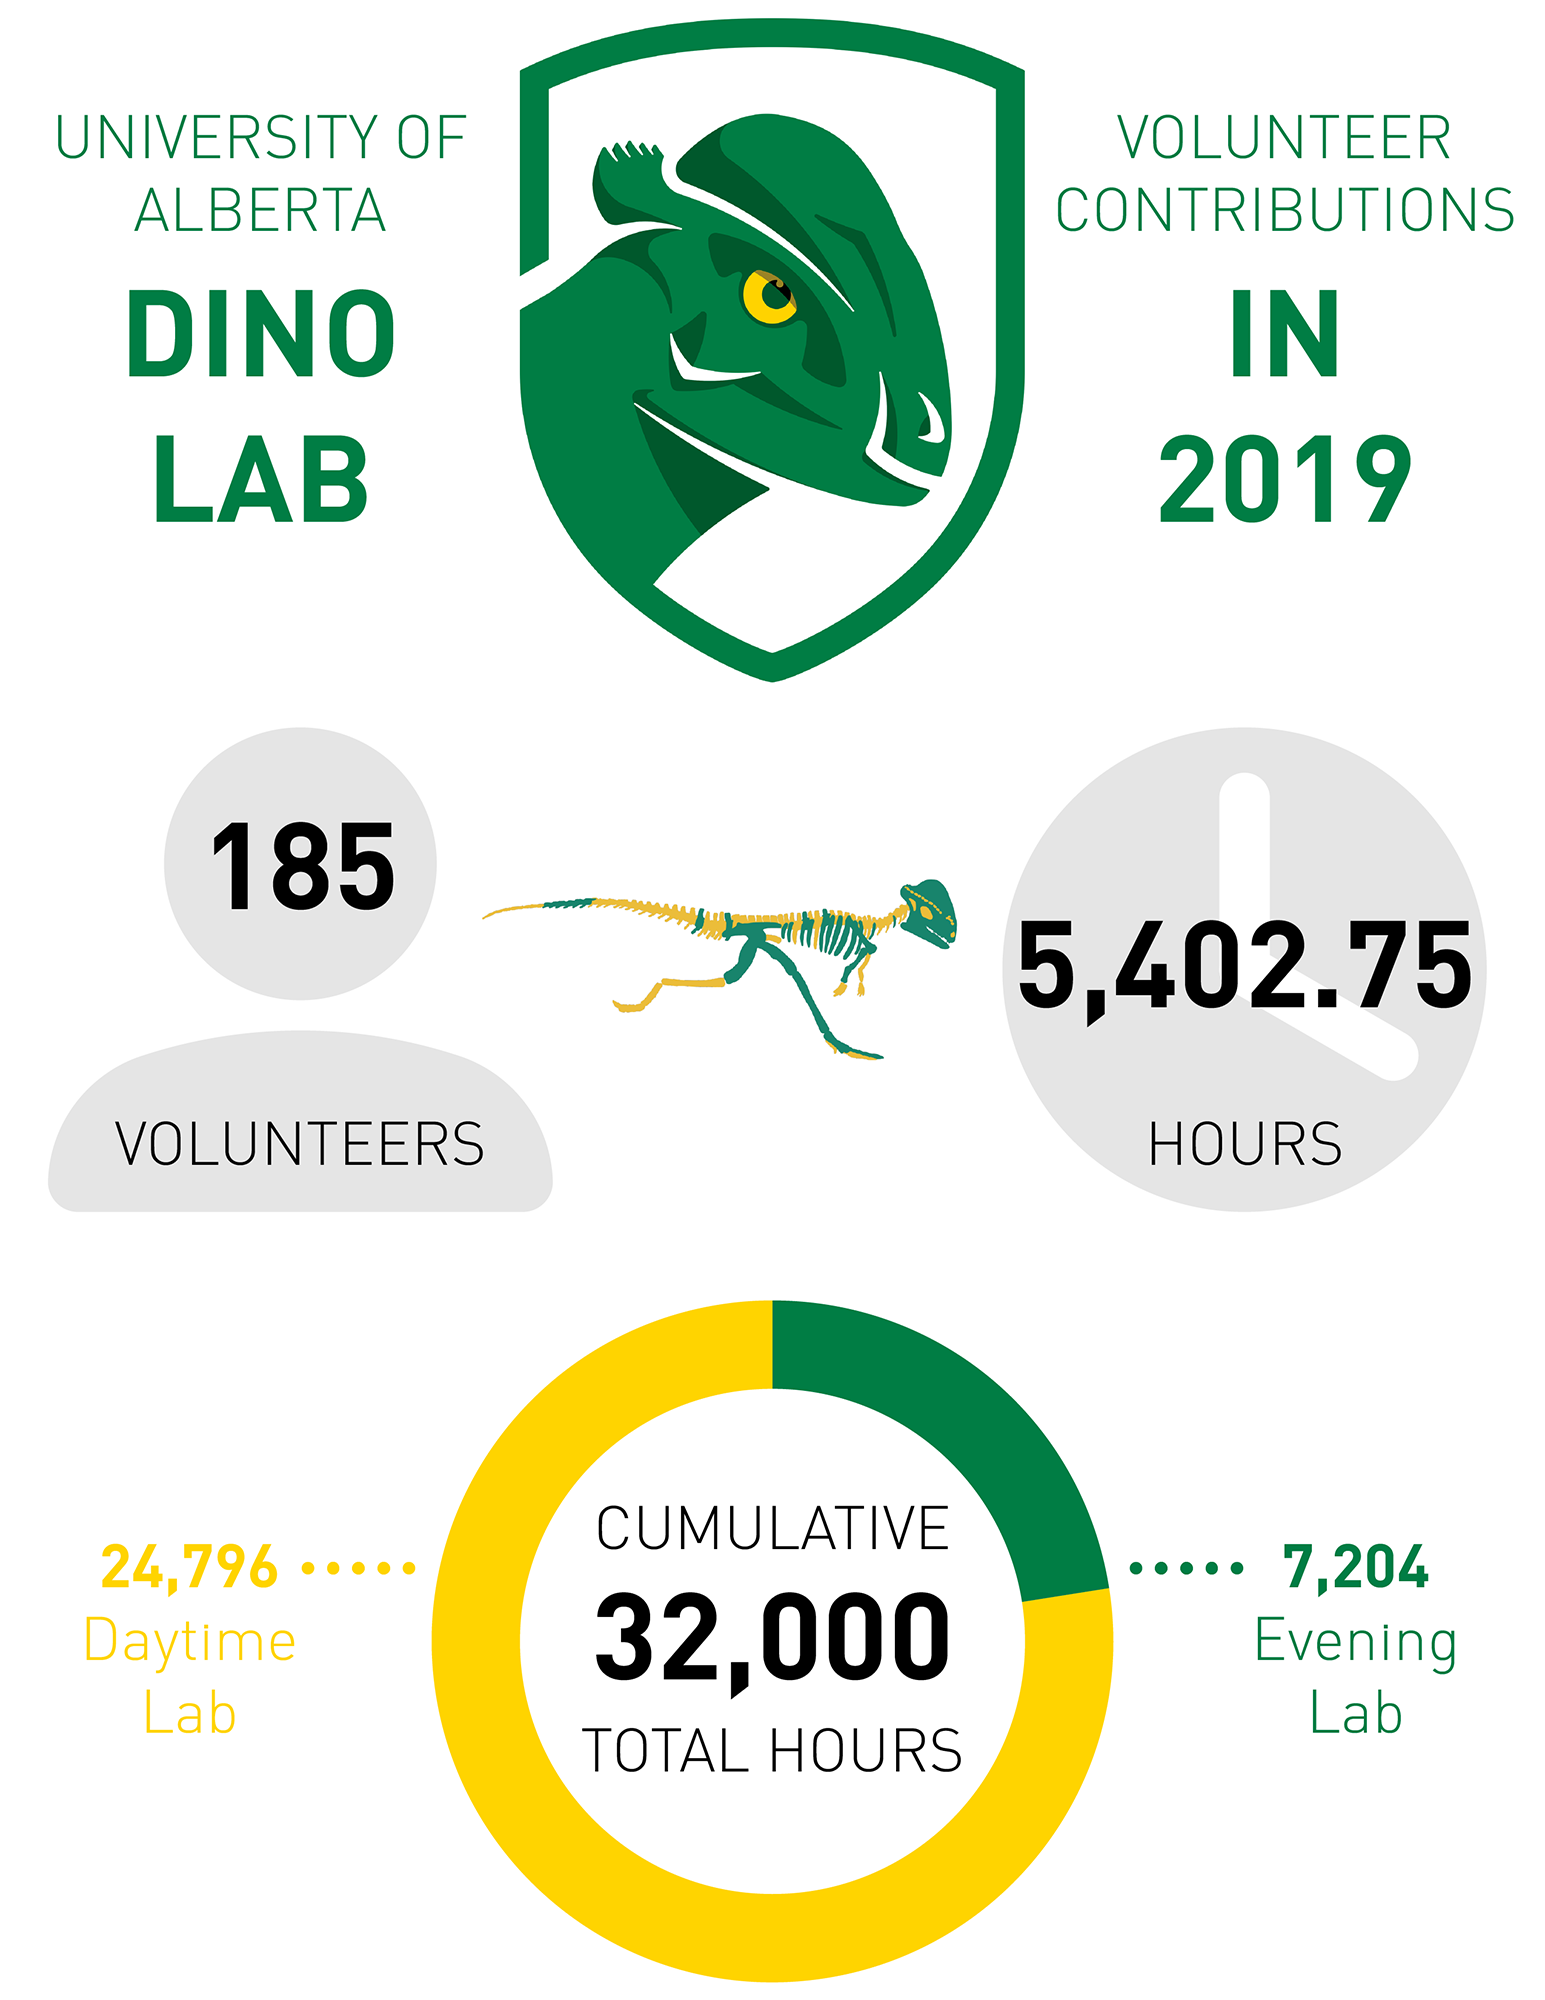 Dino Lab infographic: general information and volunteer contributions